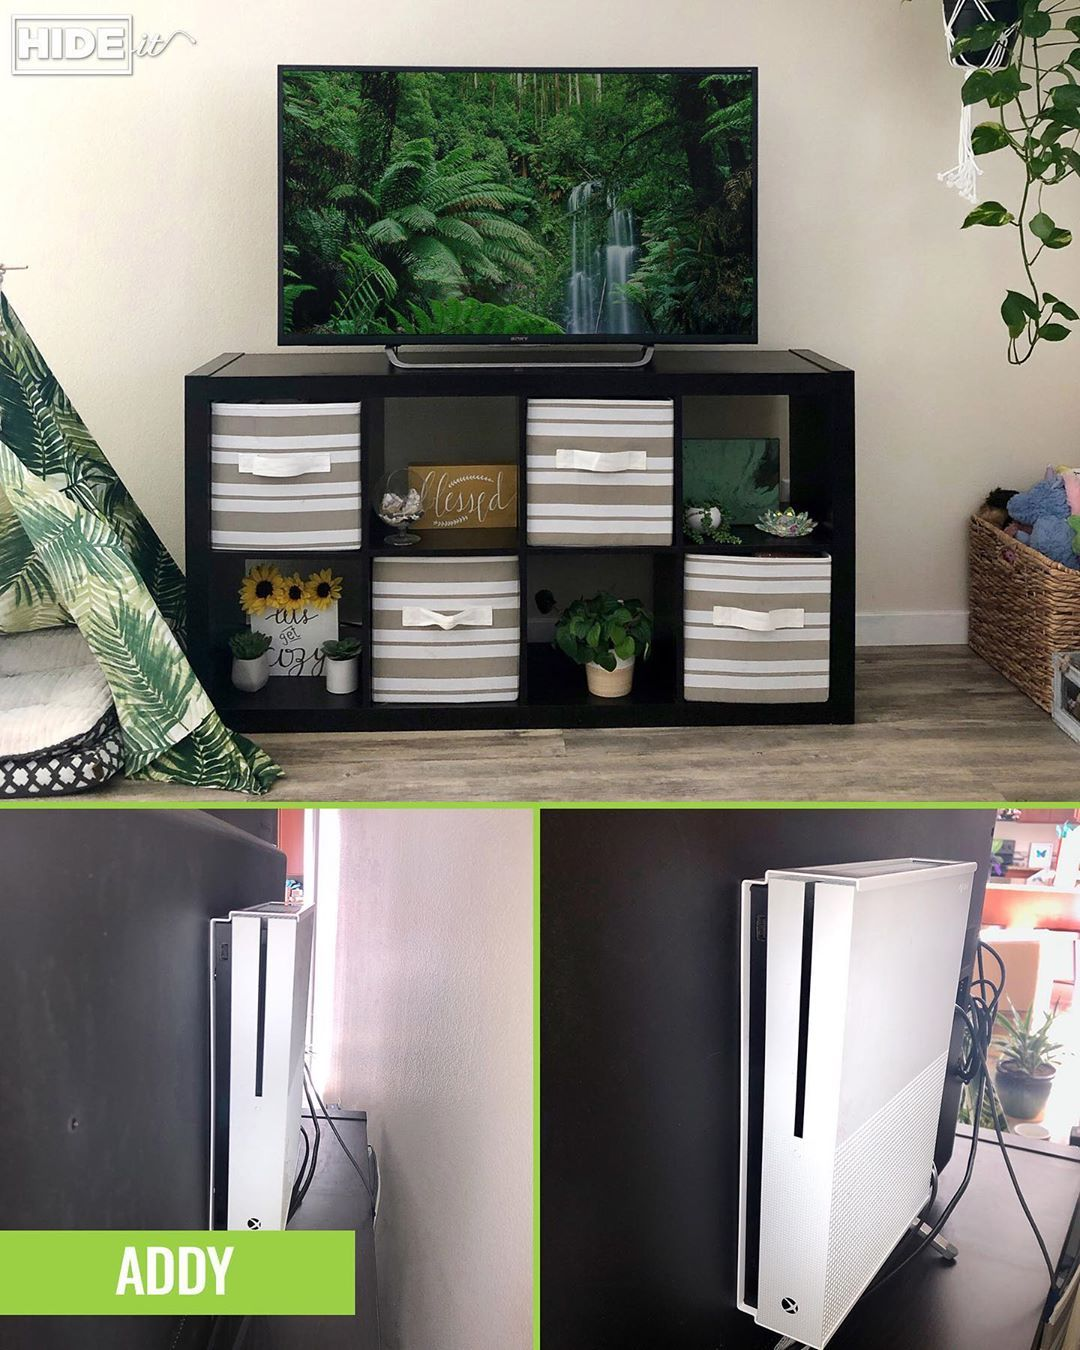 I used to store my Xbox in a shelf below my TV and it